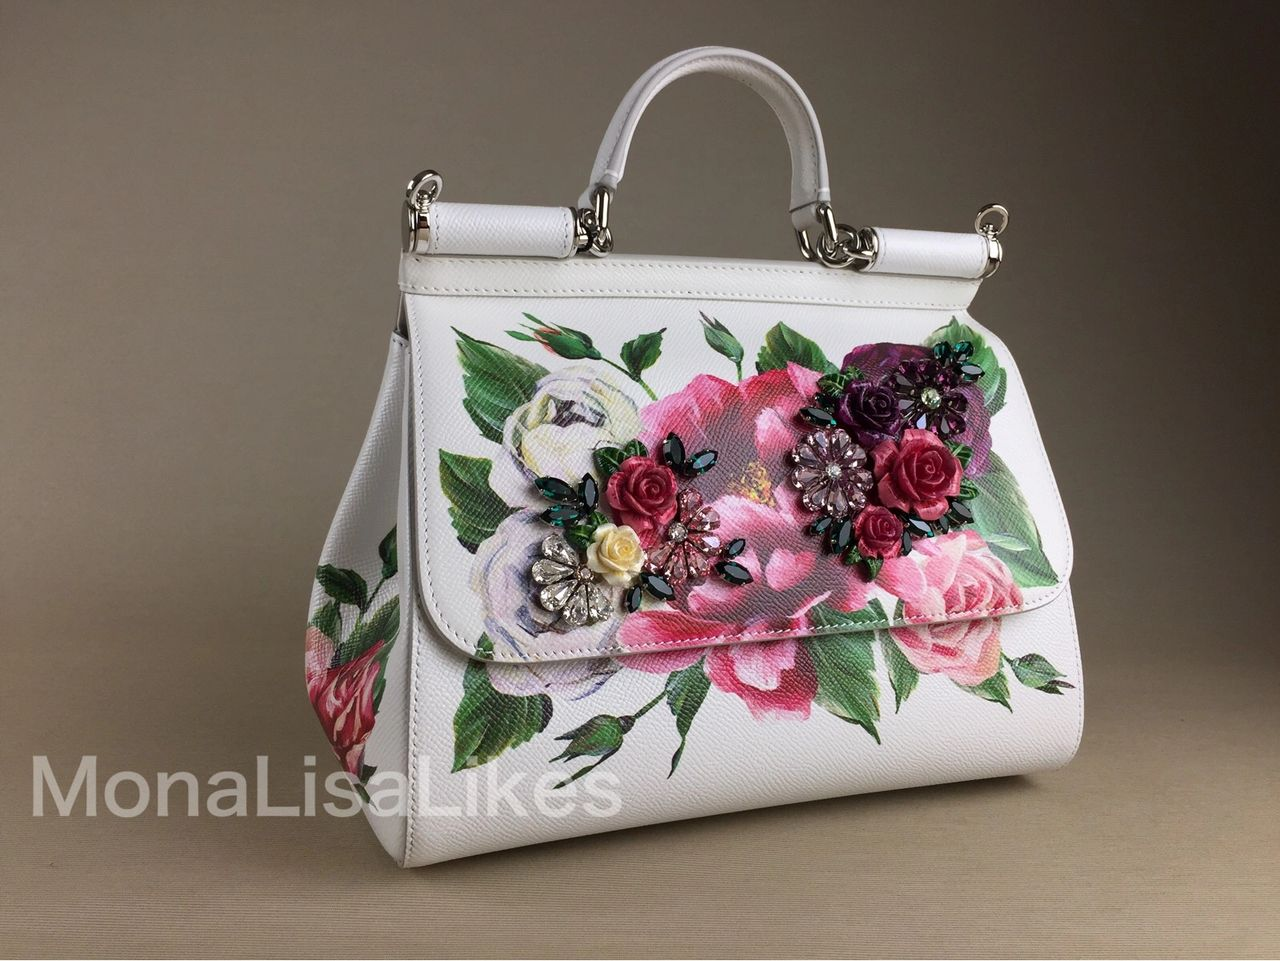 fef53eb24dfac Authentic DOLCE   GABBANA floral peony embellished Miss Sicily bag handbag  in medium size from SS